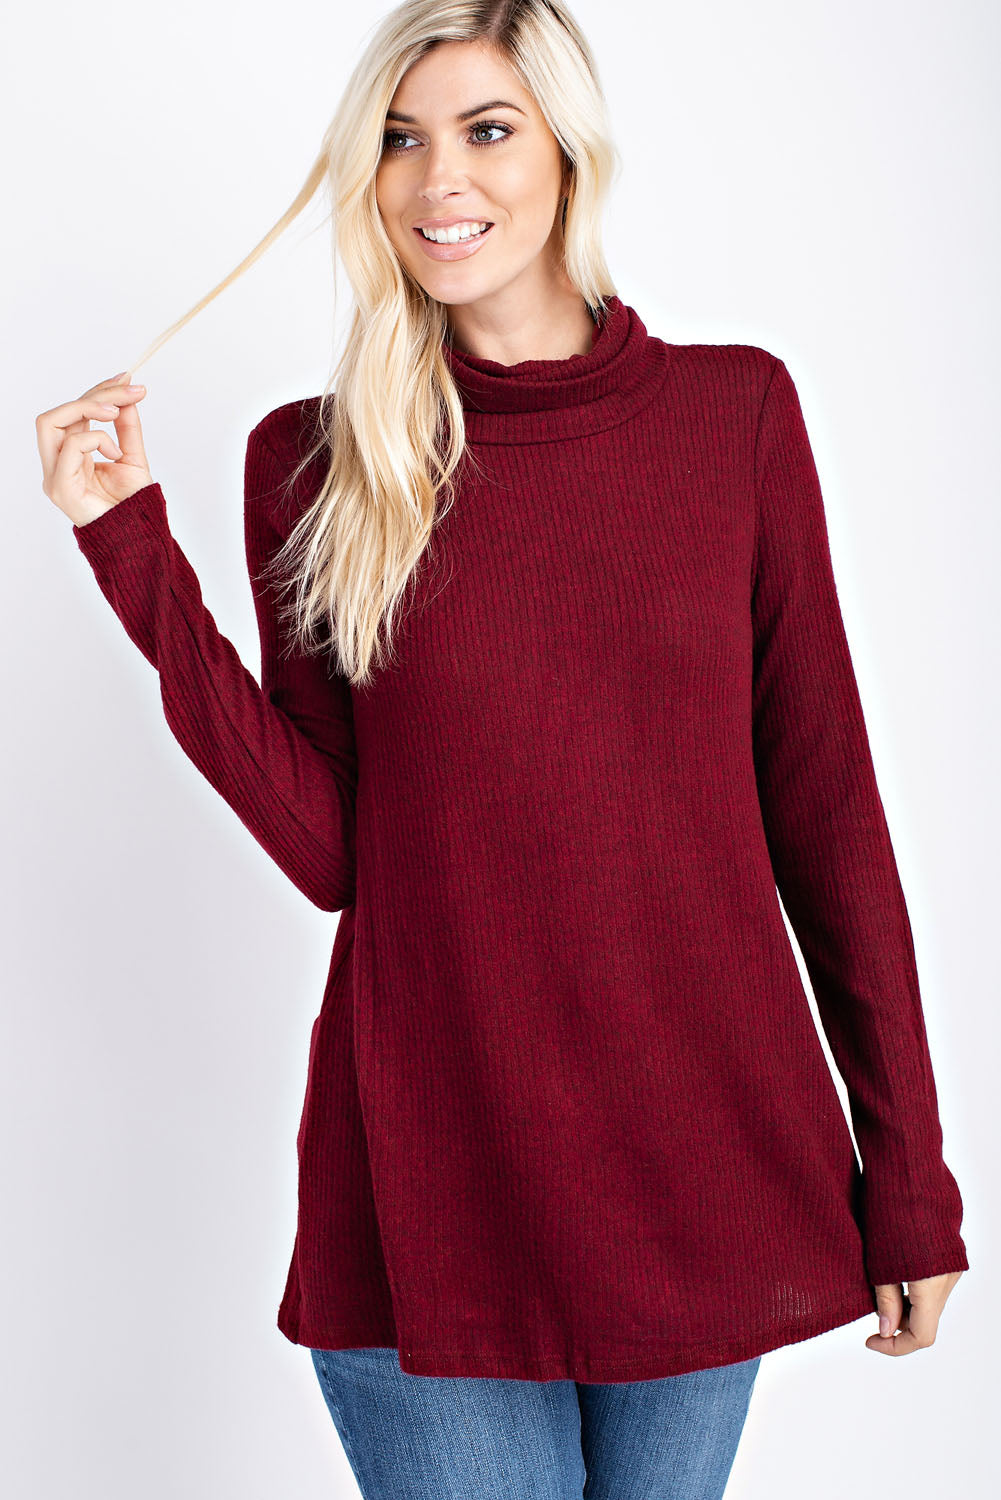 Brushed, two-tone ribbed, turtle neck top